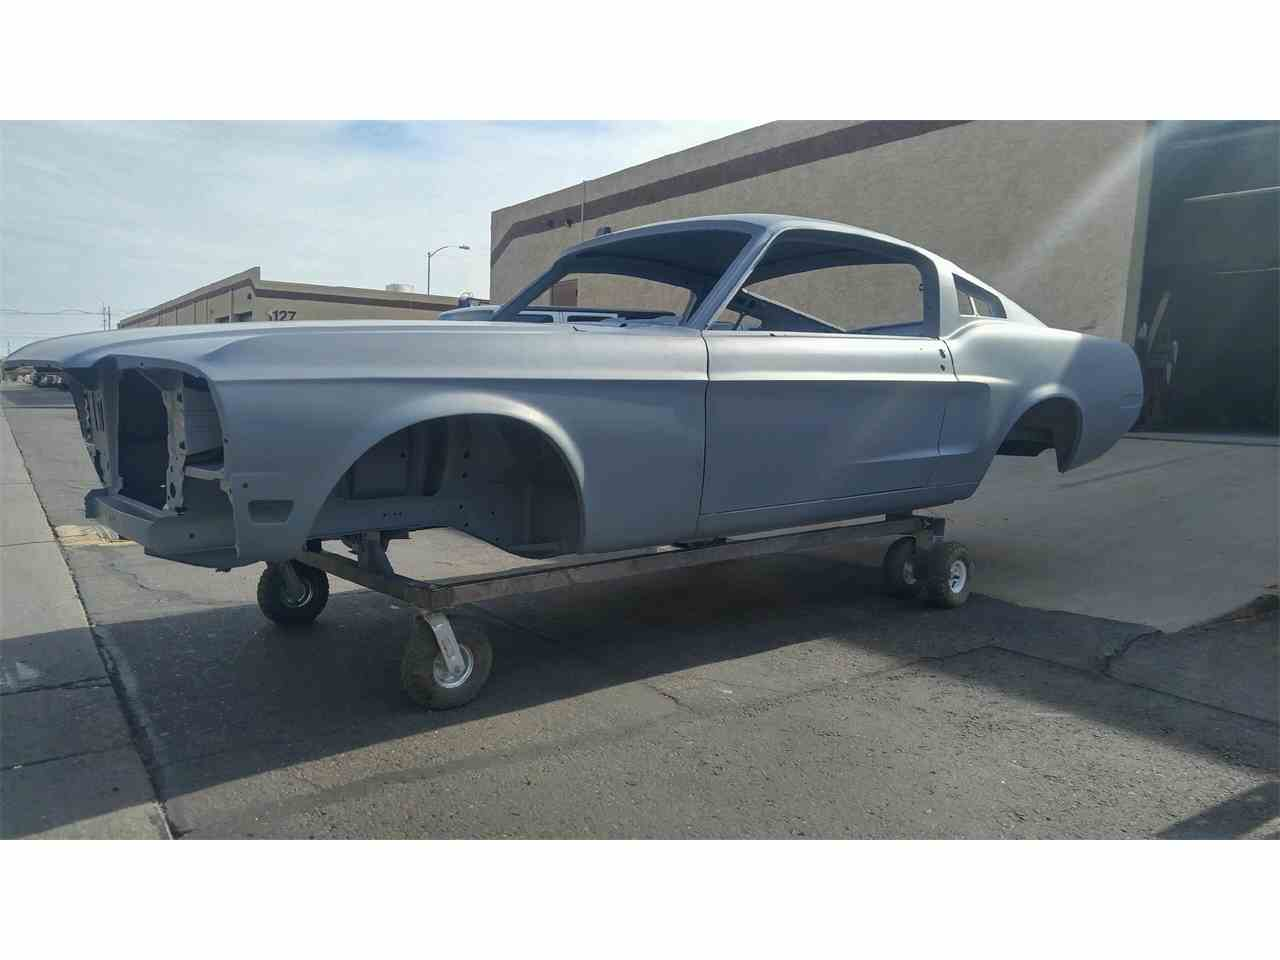 Large Picture of Classic '68 Mustang Restored Body Shells located in Scottsdale Arizona - $16,700.00 Offered by Desert Classic Mustangs - JP9Q